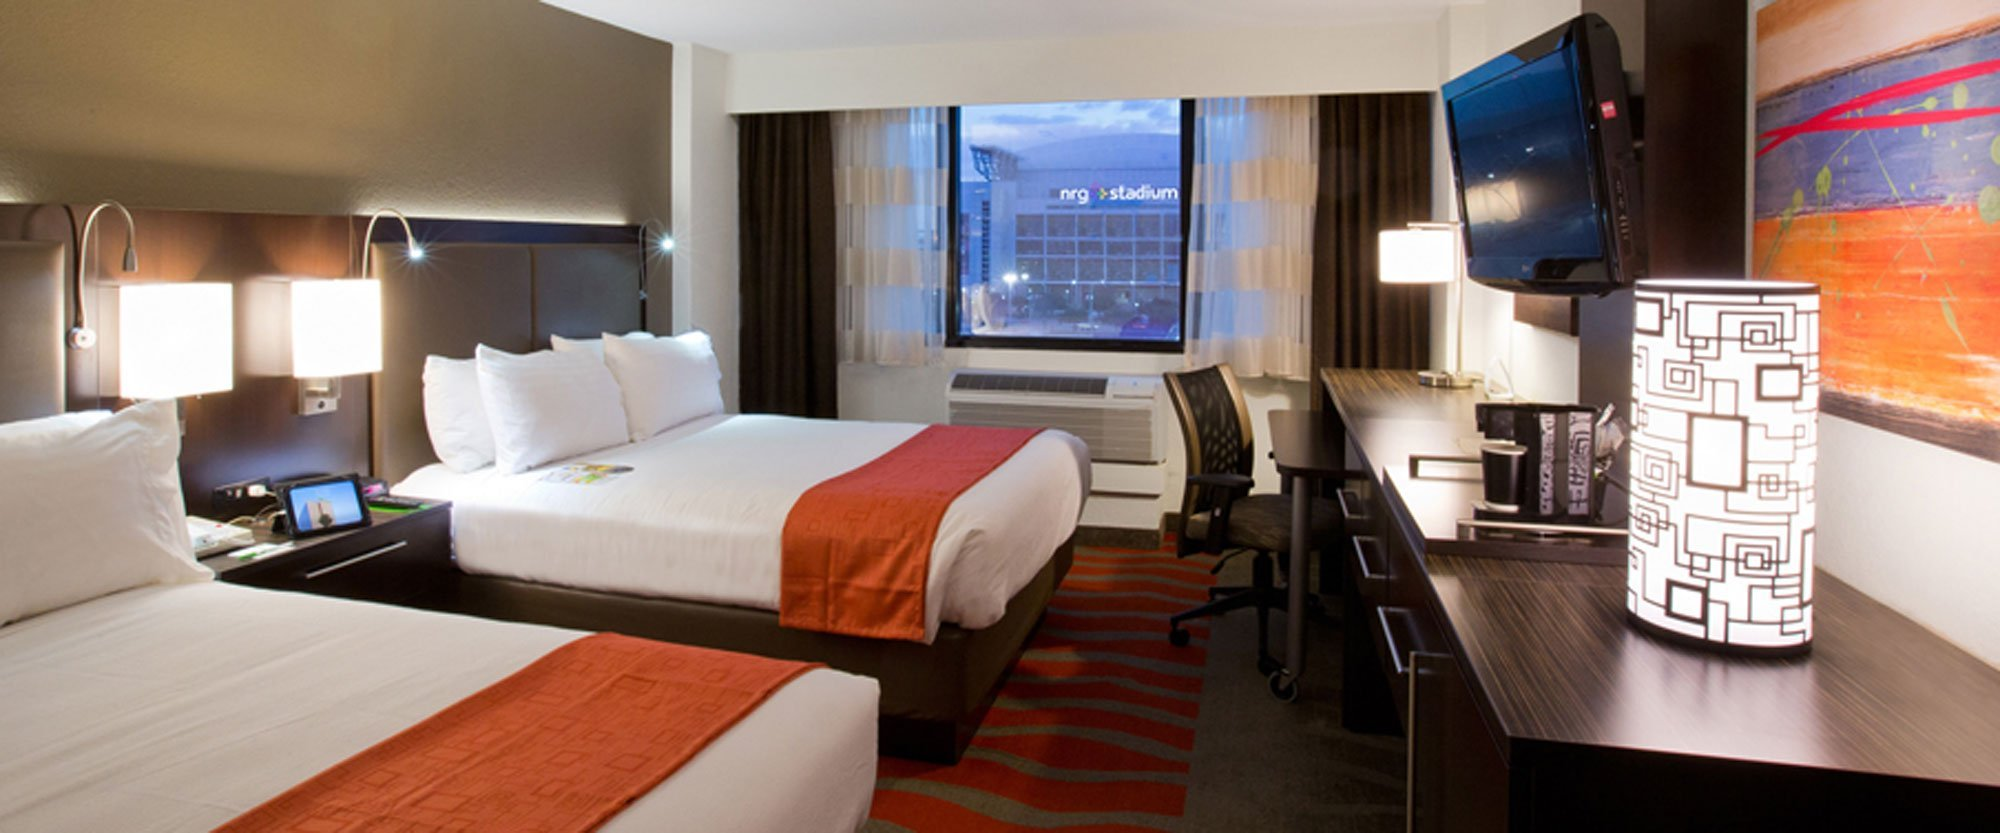 Houston NRG Stadium Hotel